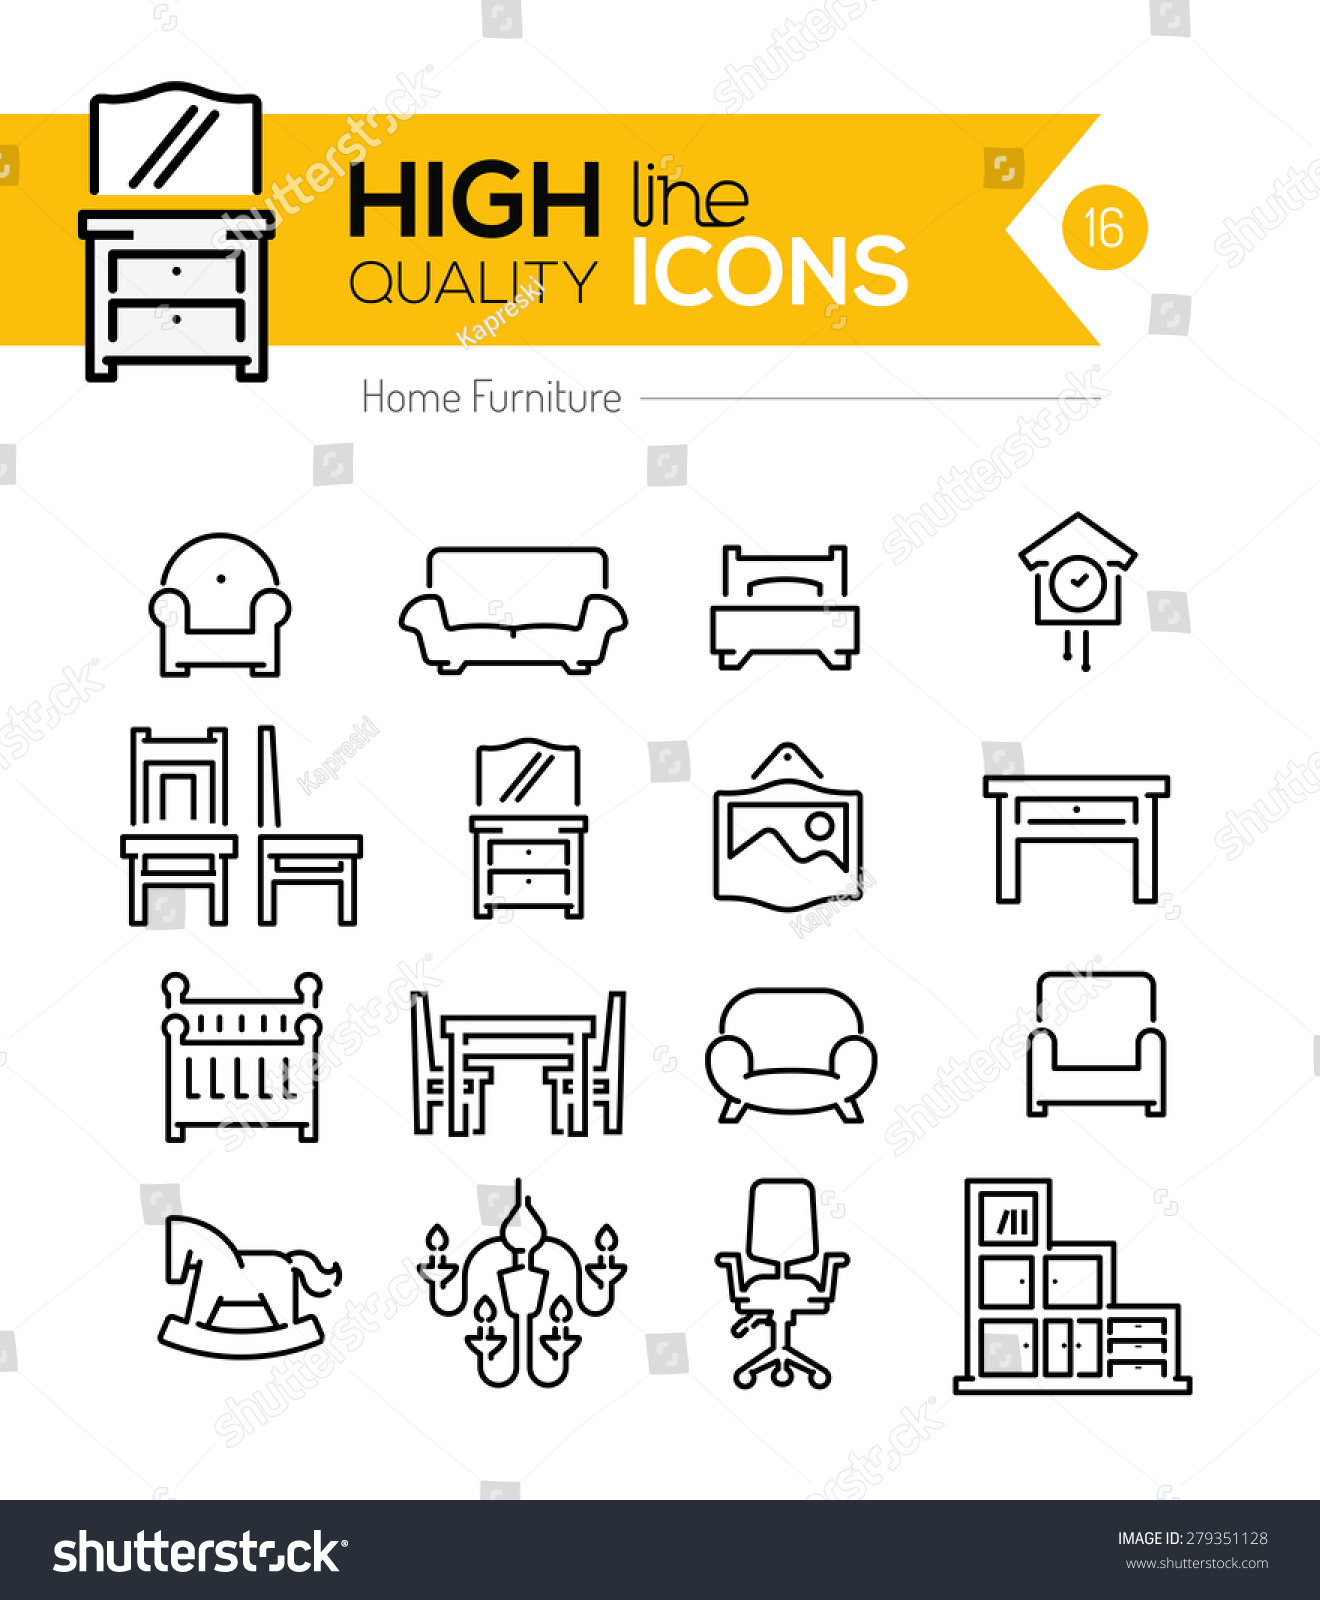 High Quality Home Furniture Line Icons Stock Vector Illustration 279351128 Shutterstock